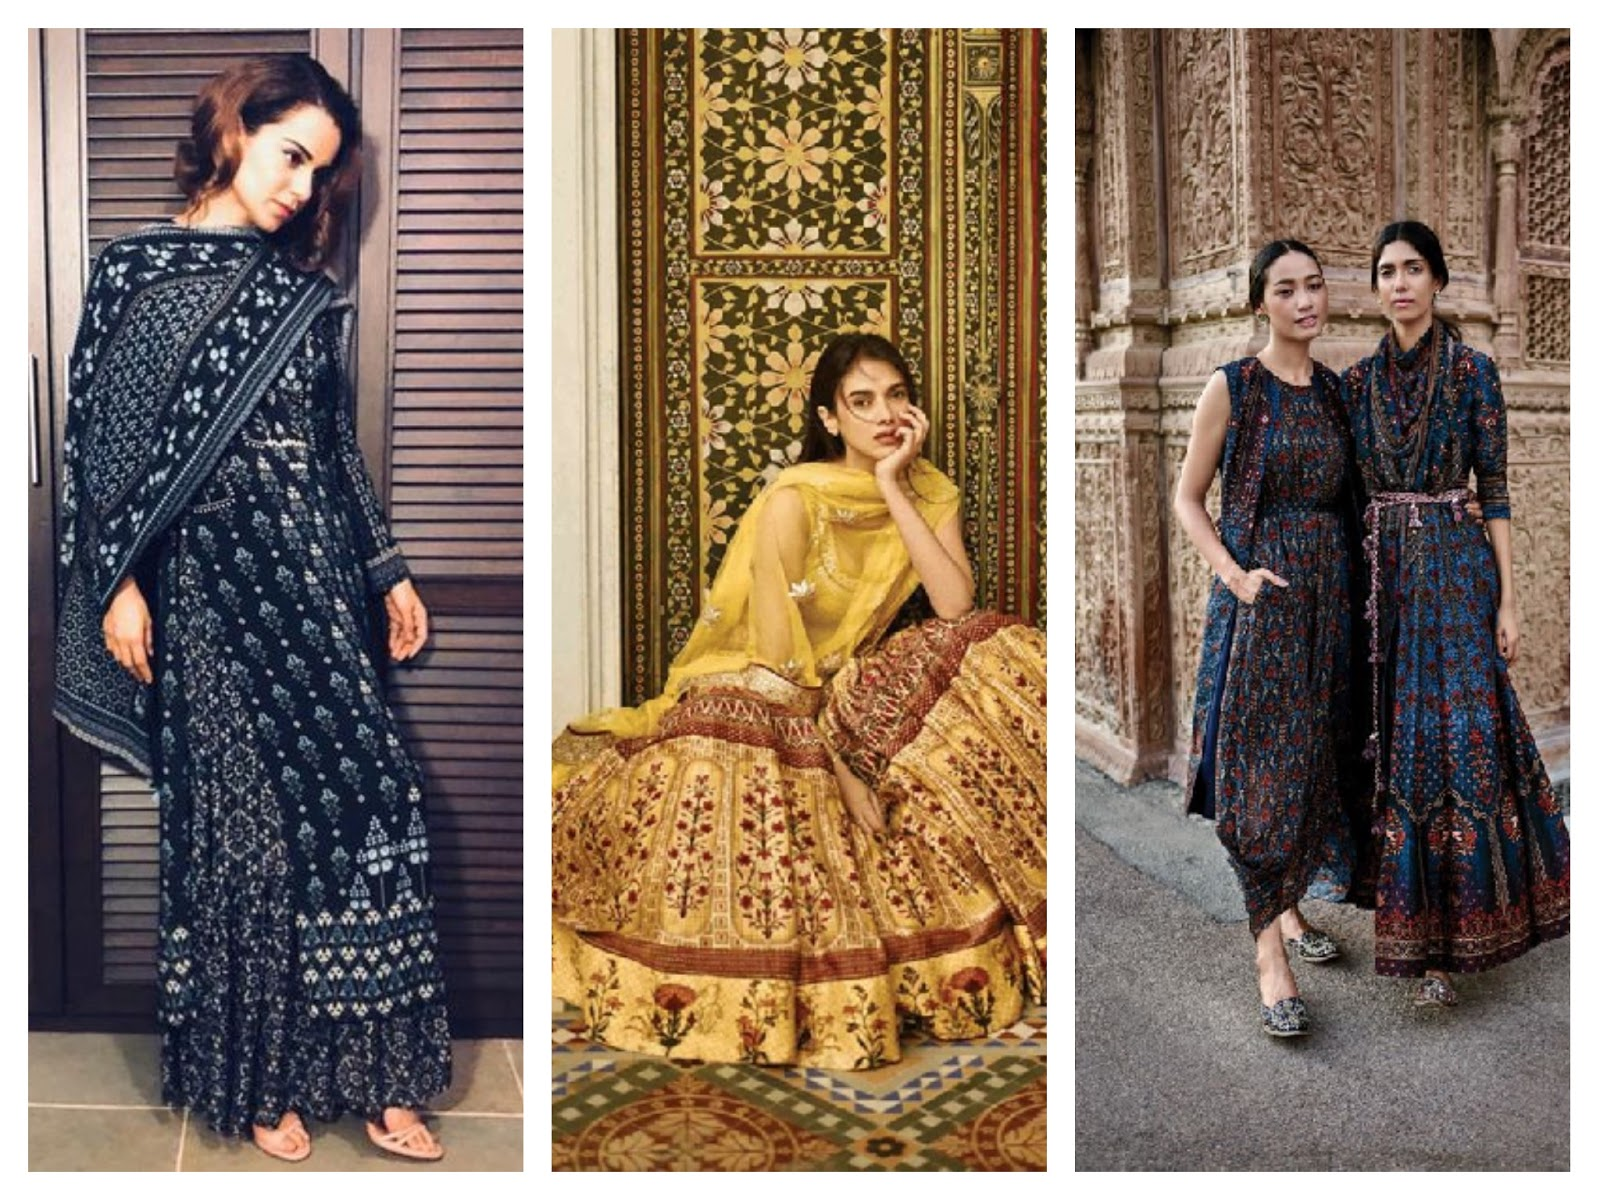 dd29ec782c If you are looking for Indian ethnic wear that is designer and suitable for  Big fat Indian weddings then you must pick an outfit by Anita Dongre !